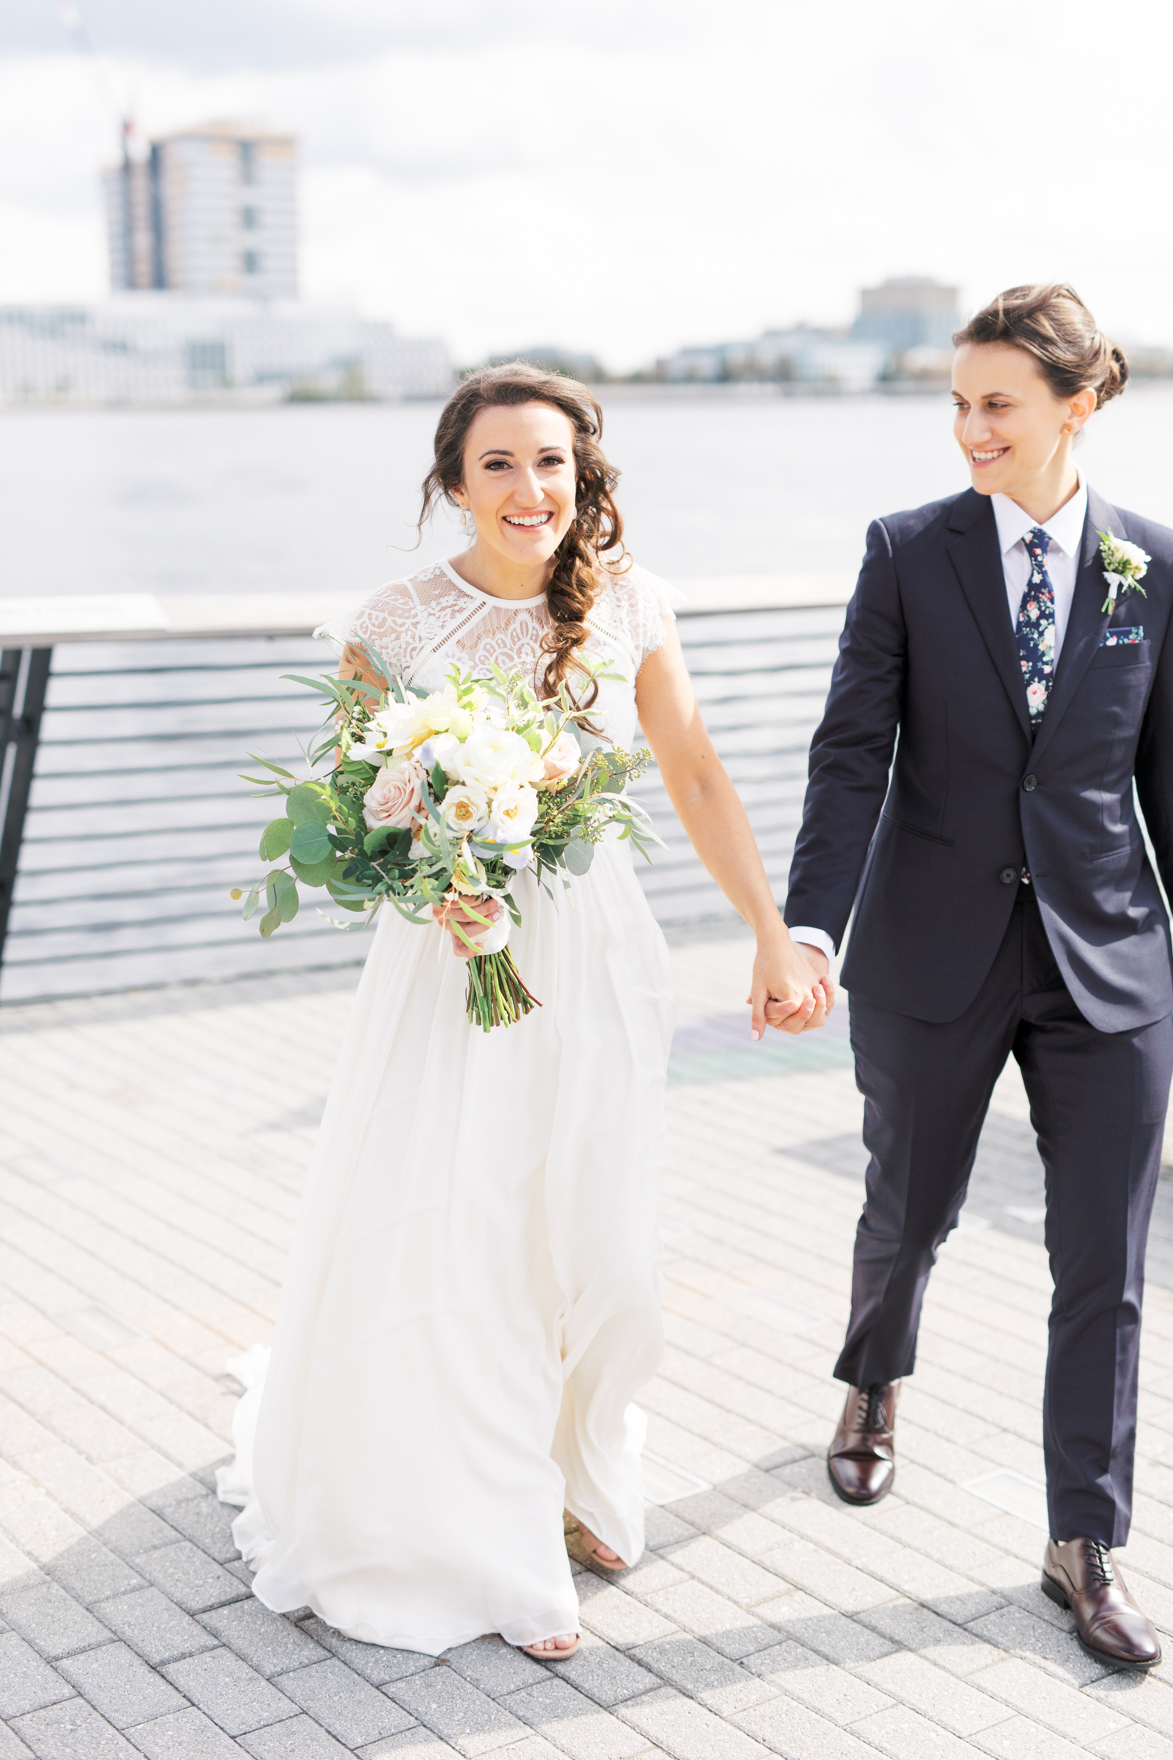 Dani and Missy had such a classic look for their wedding day with a modern twist. Missy's lace top and Dani's floral tie added just a little bit quirkiness into their modern and elegant old city Philadelphia wedding at Power Plant Productions. Power Plant Production wedding photographer